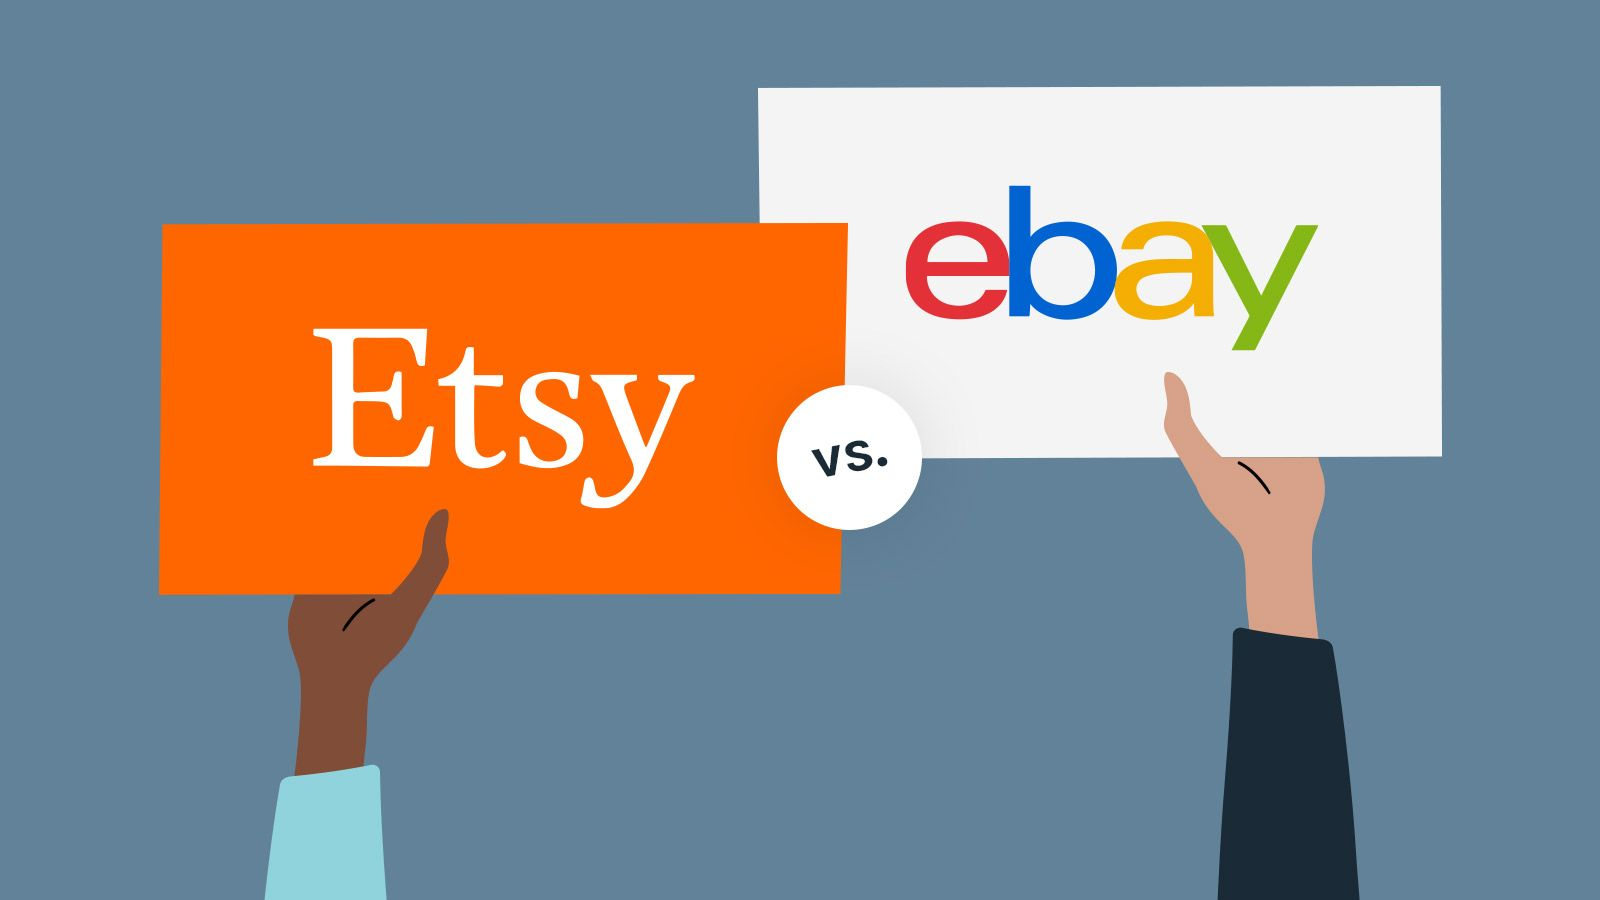 Etsy vs eBay - Understanding the differences